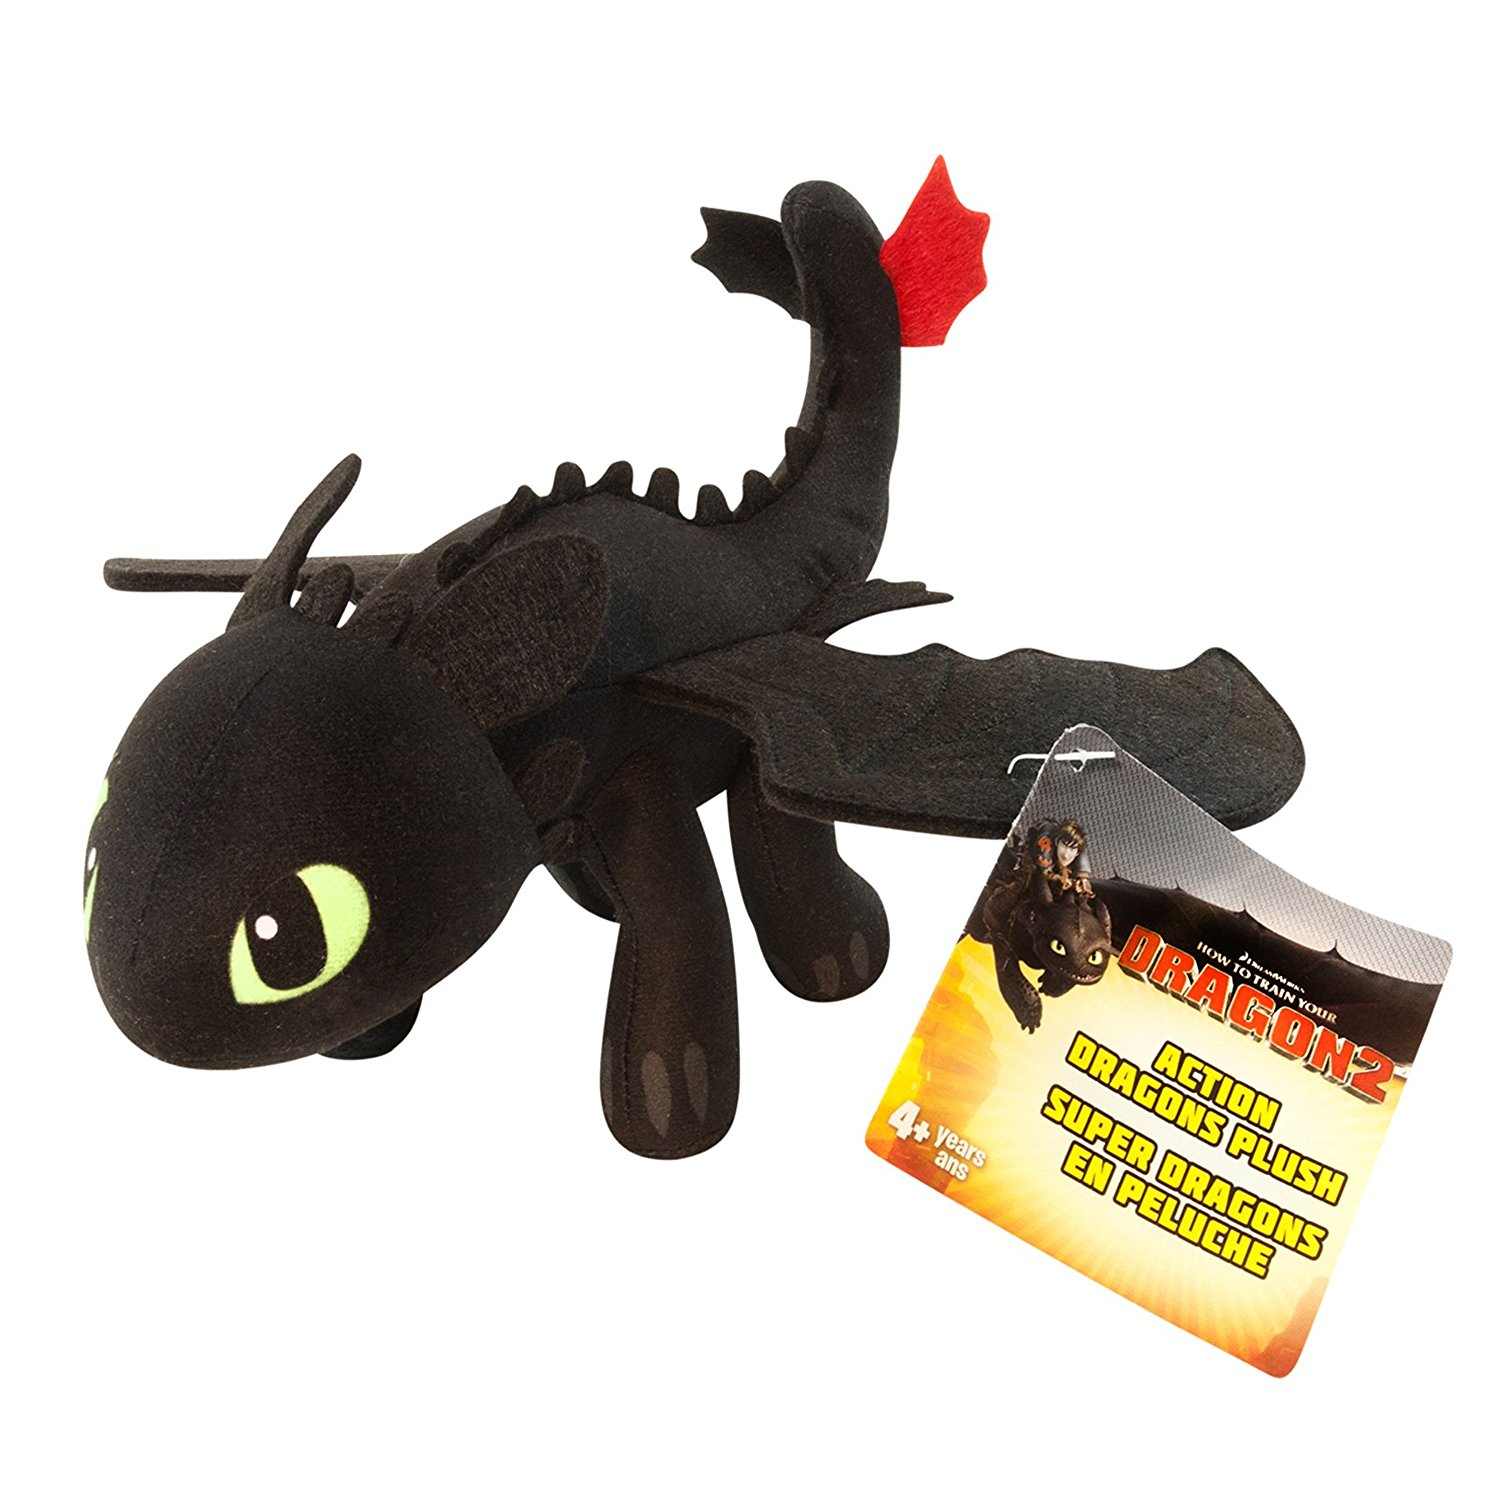 DreamWorks Dragons: How To Train Your Dragon